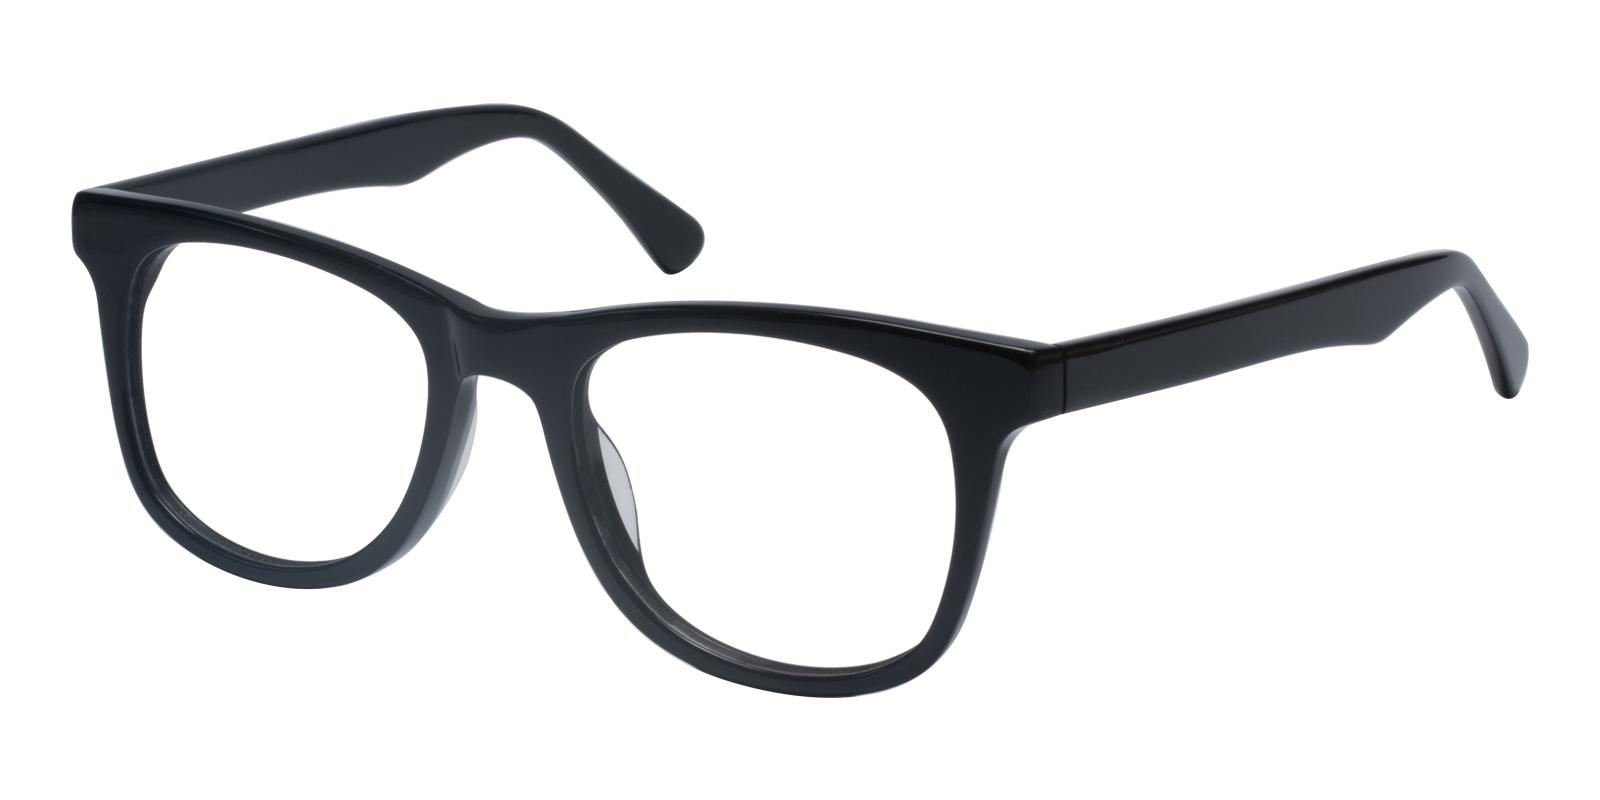 Standie Black Acetate Eyeglasses , UniversalBridgeFit Frames from ABBE Glasses